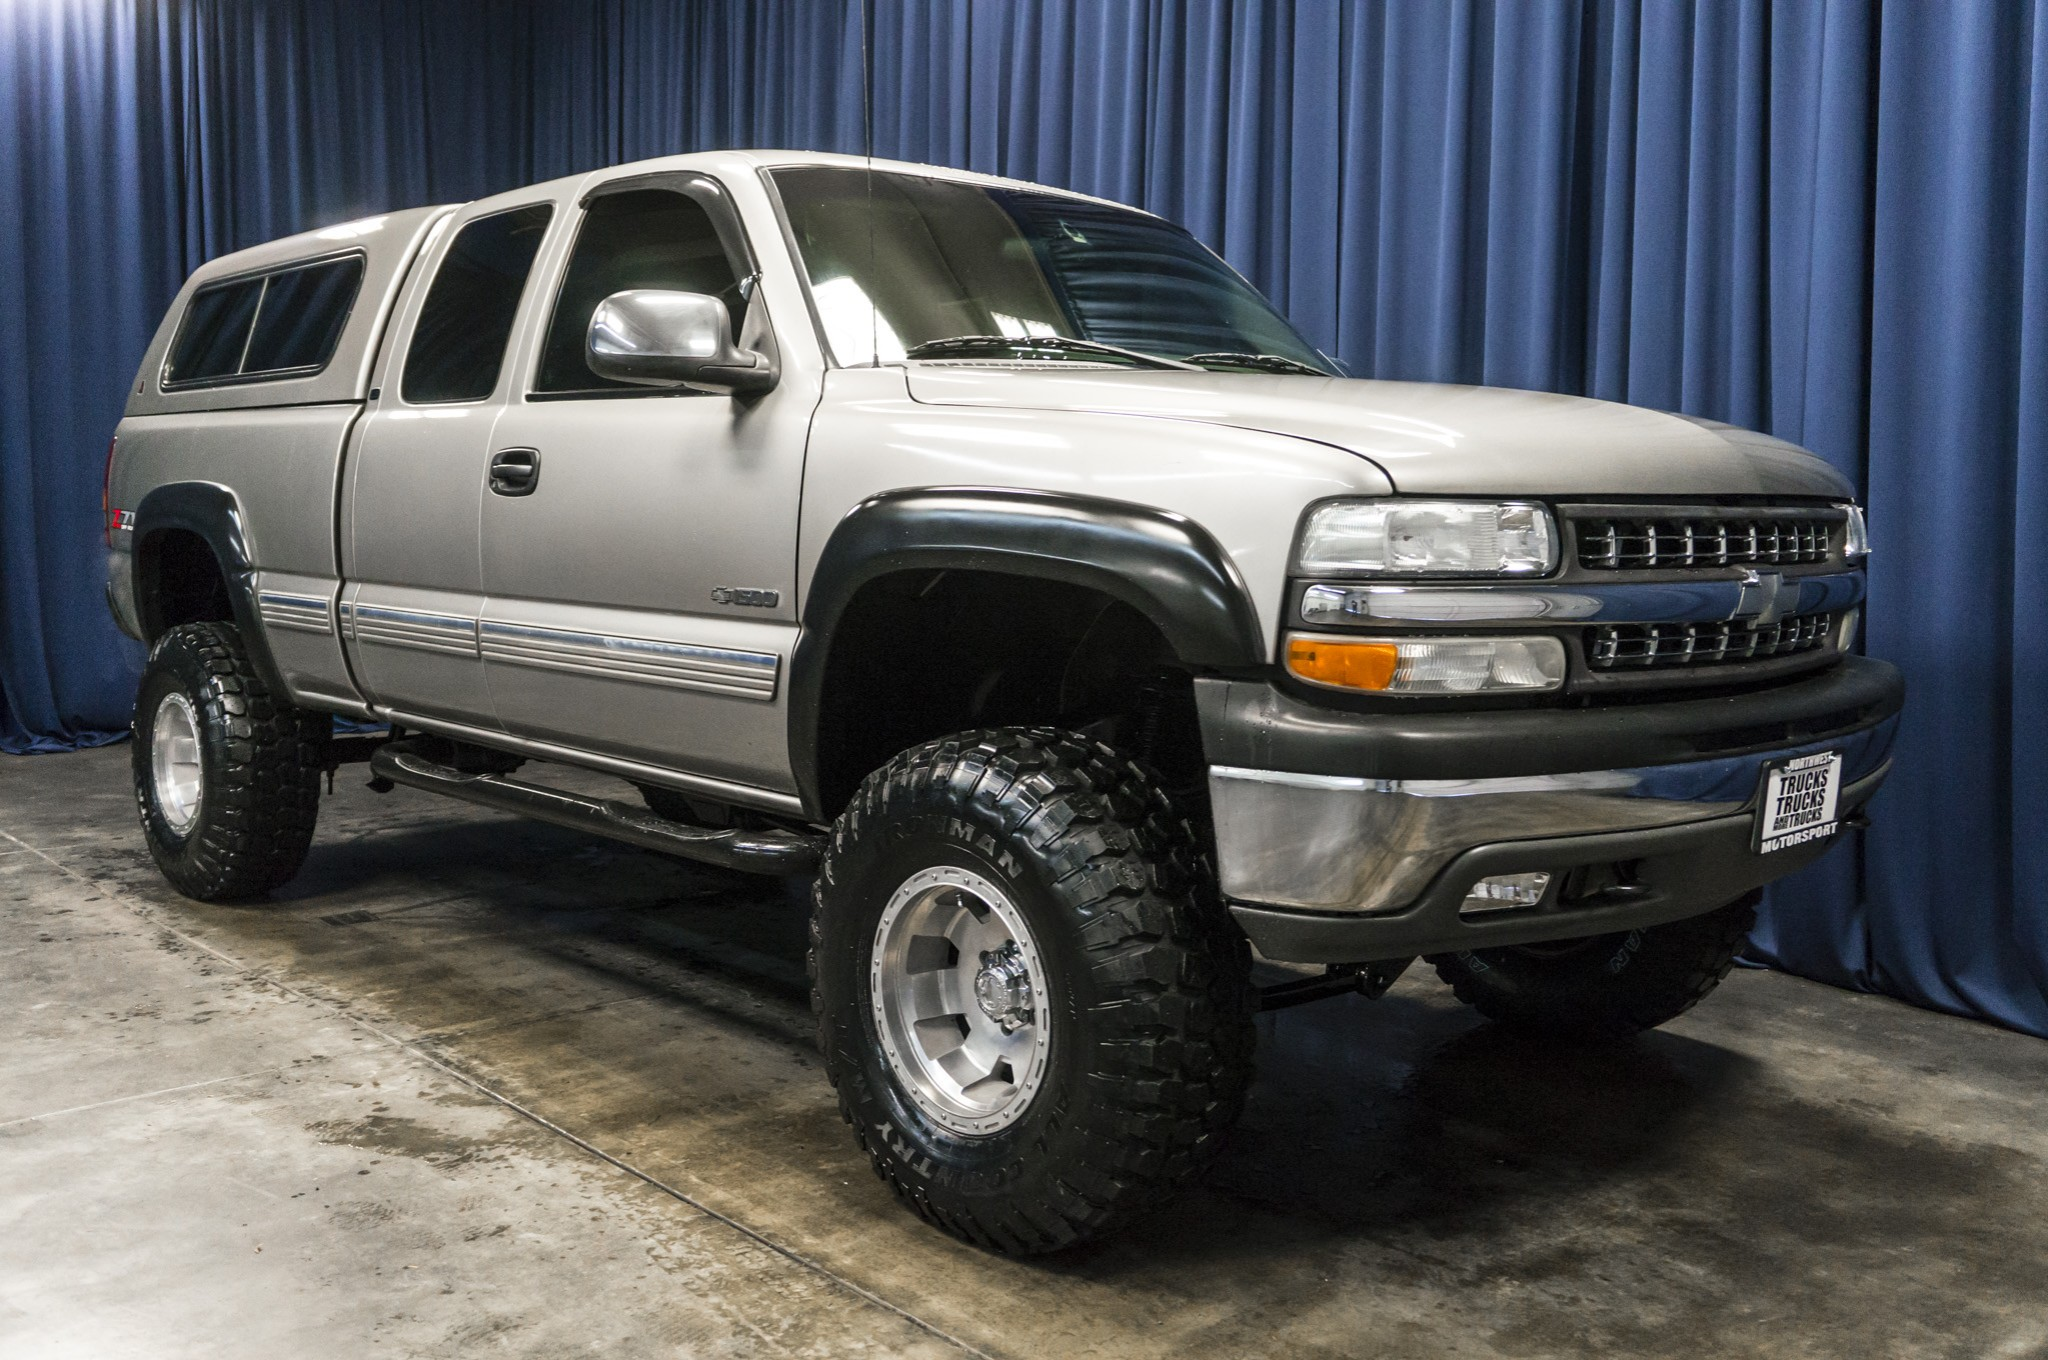 Used lifted 2002 chevrolet silverado 1500 ls 4x4 truck for sale chevrolet silverado 1500 ls 4x4 sciox Choice Image